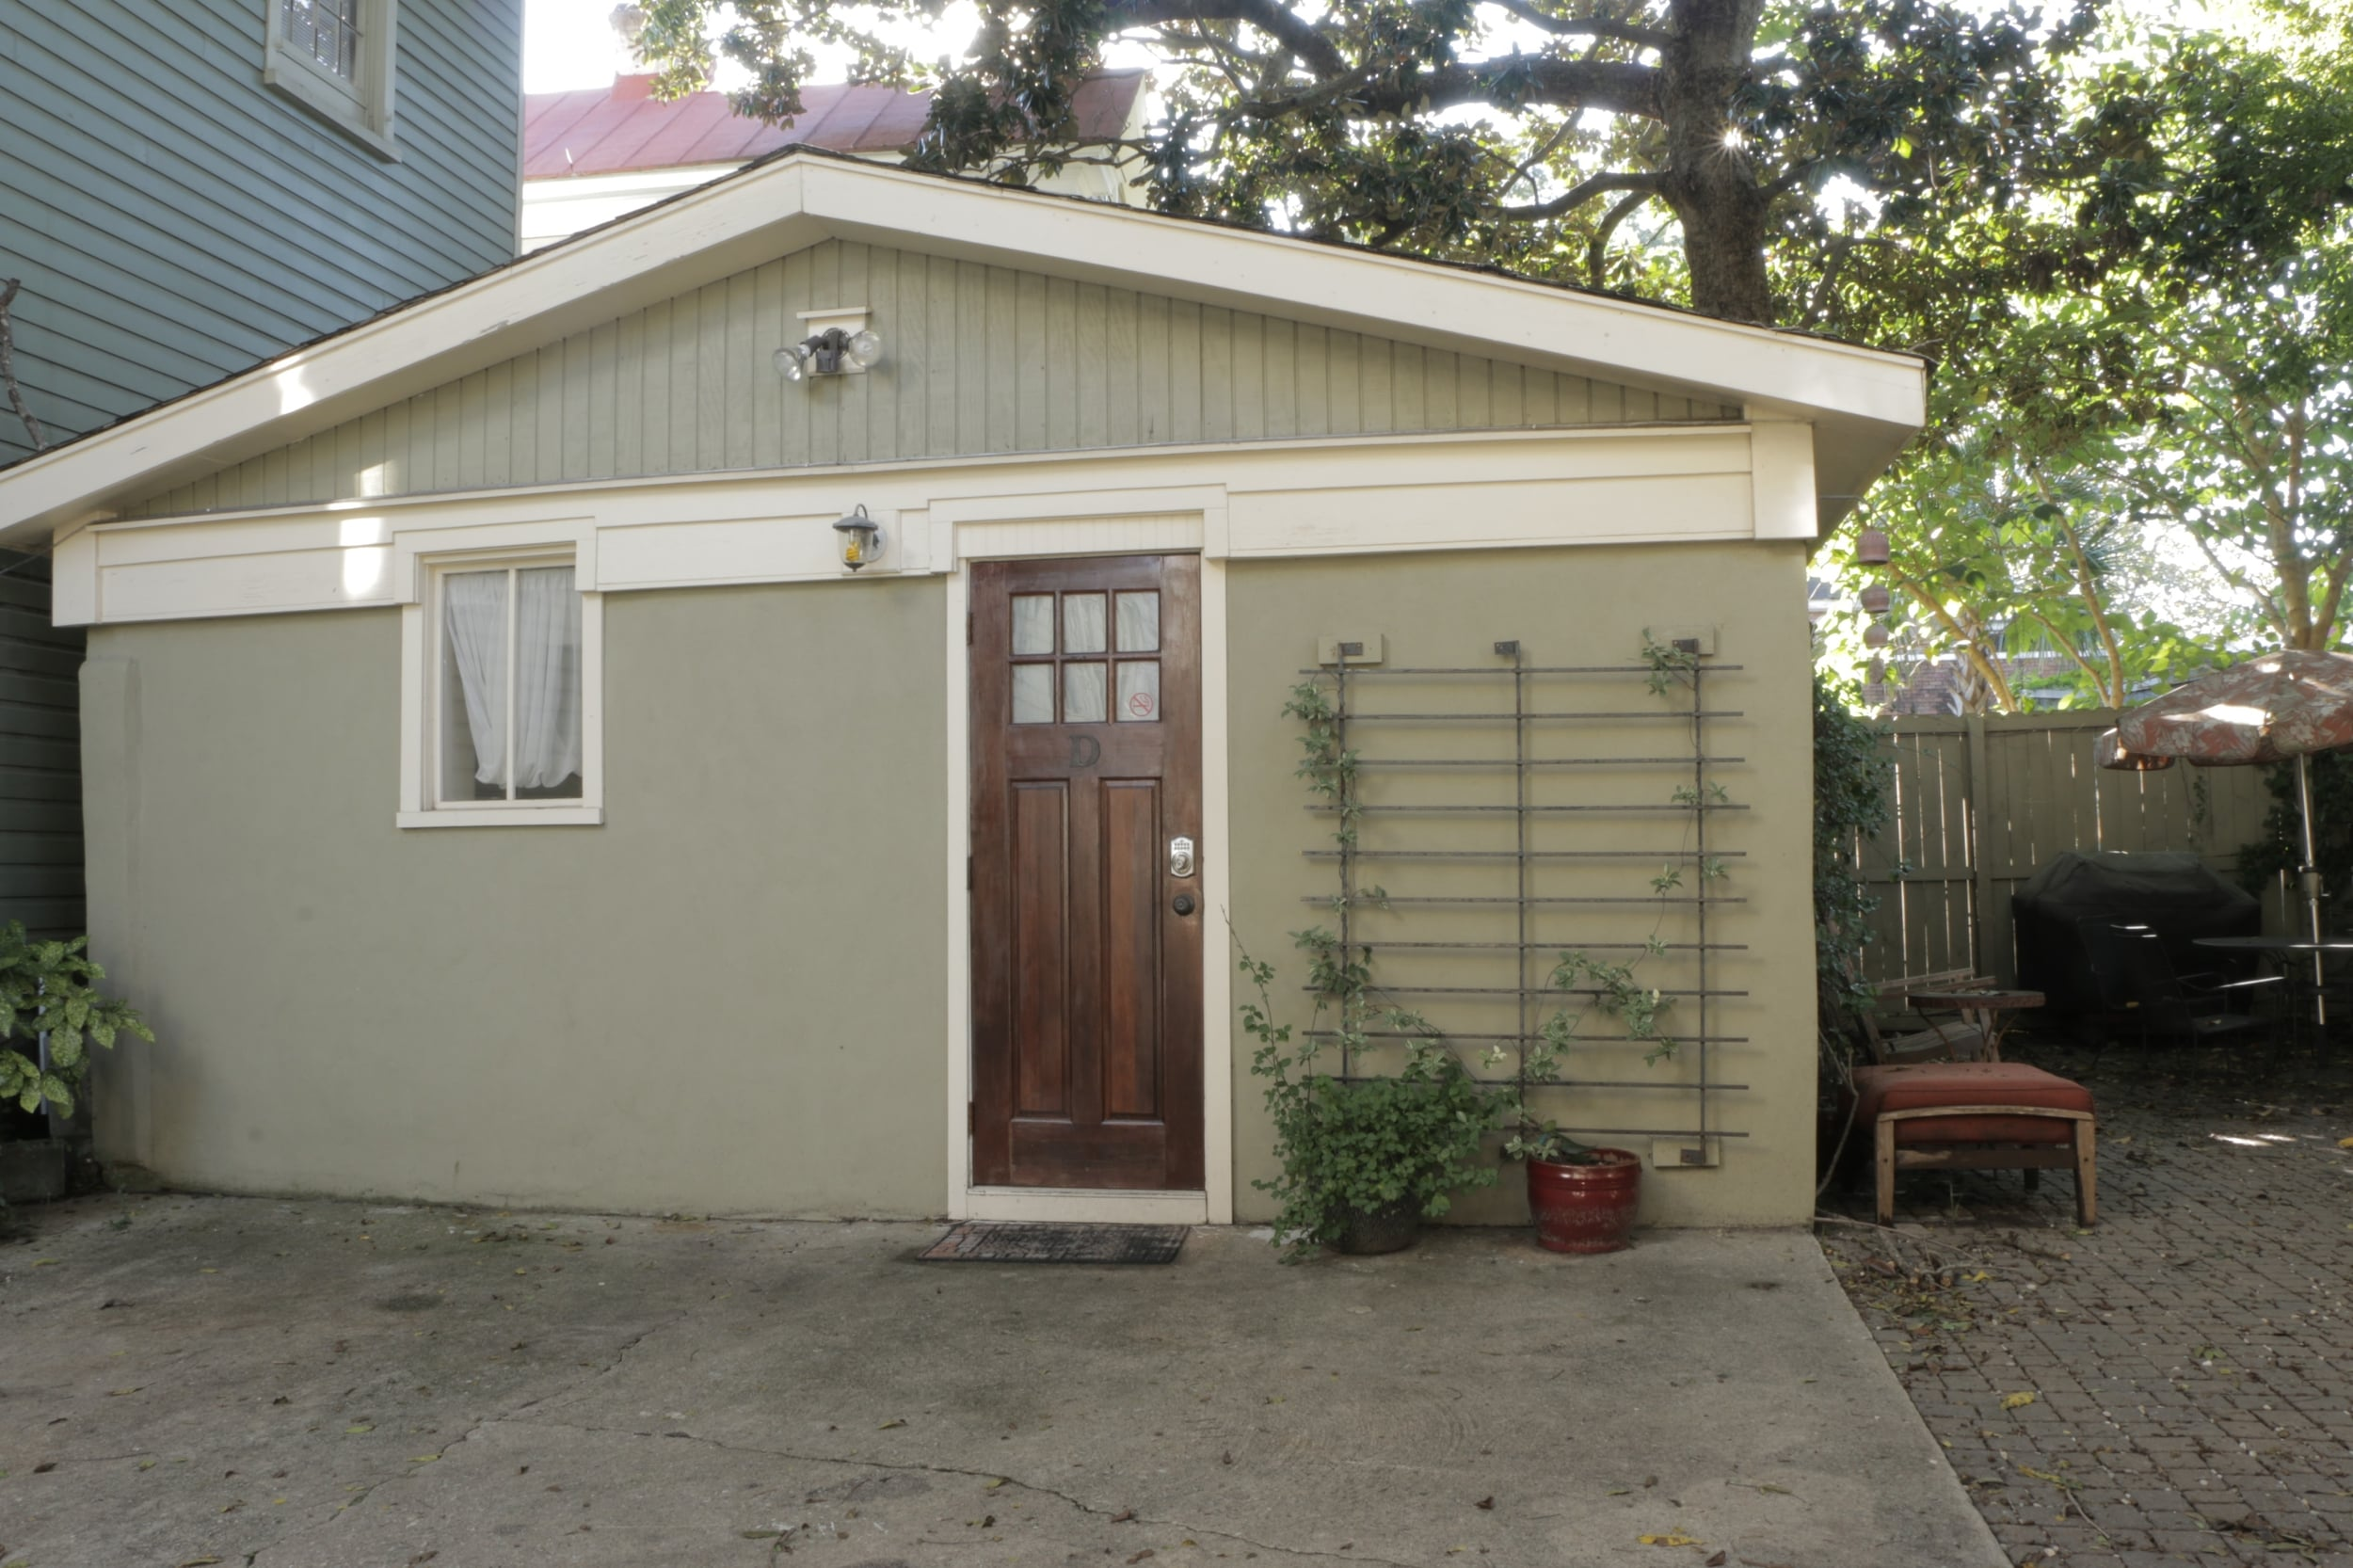 Carriage House Rental Property